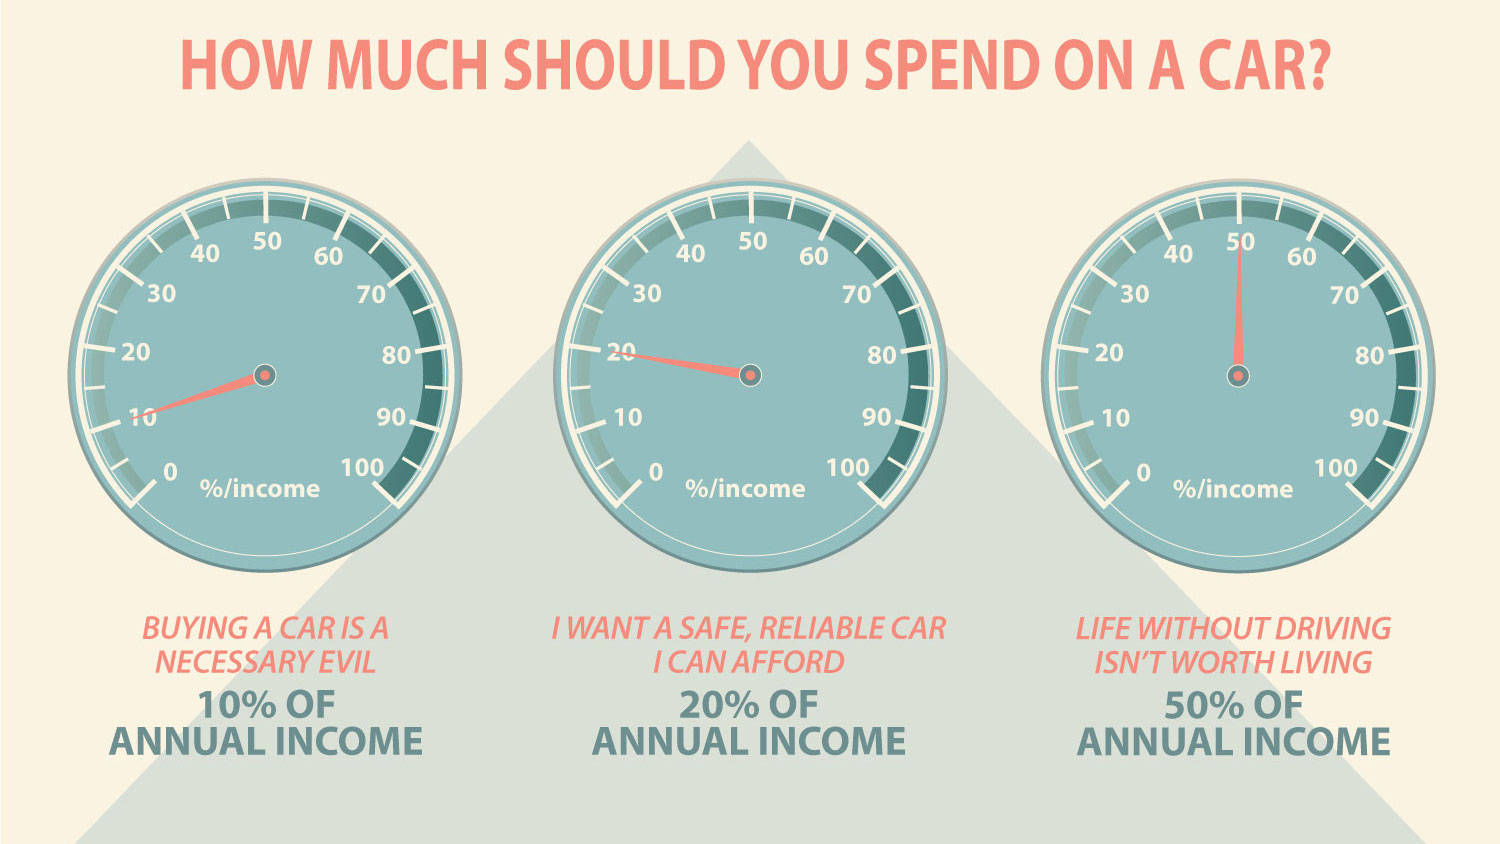 How-much-should-you-spend-on-a-car.jpg